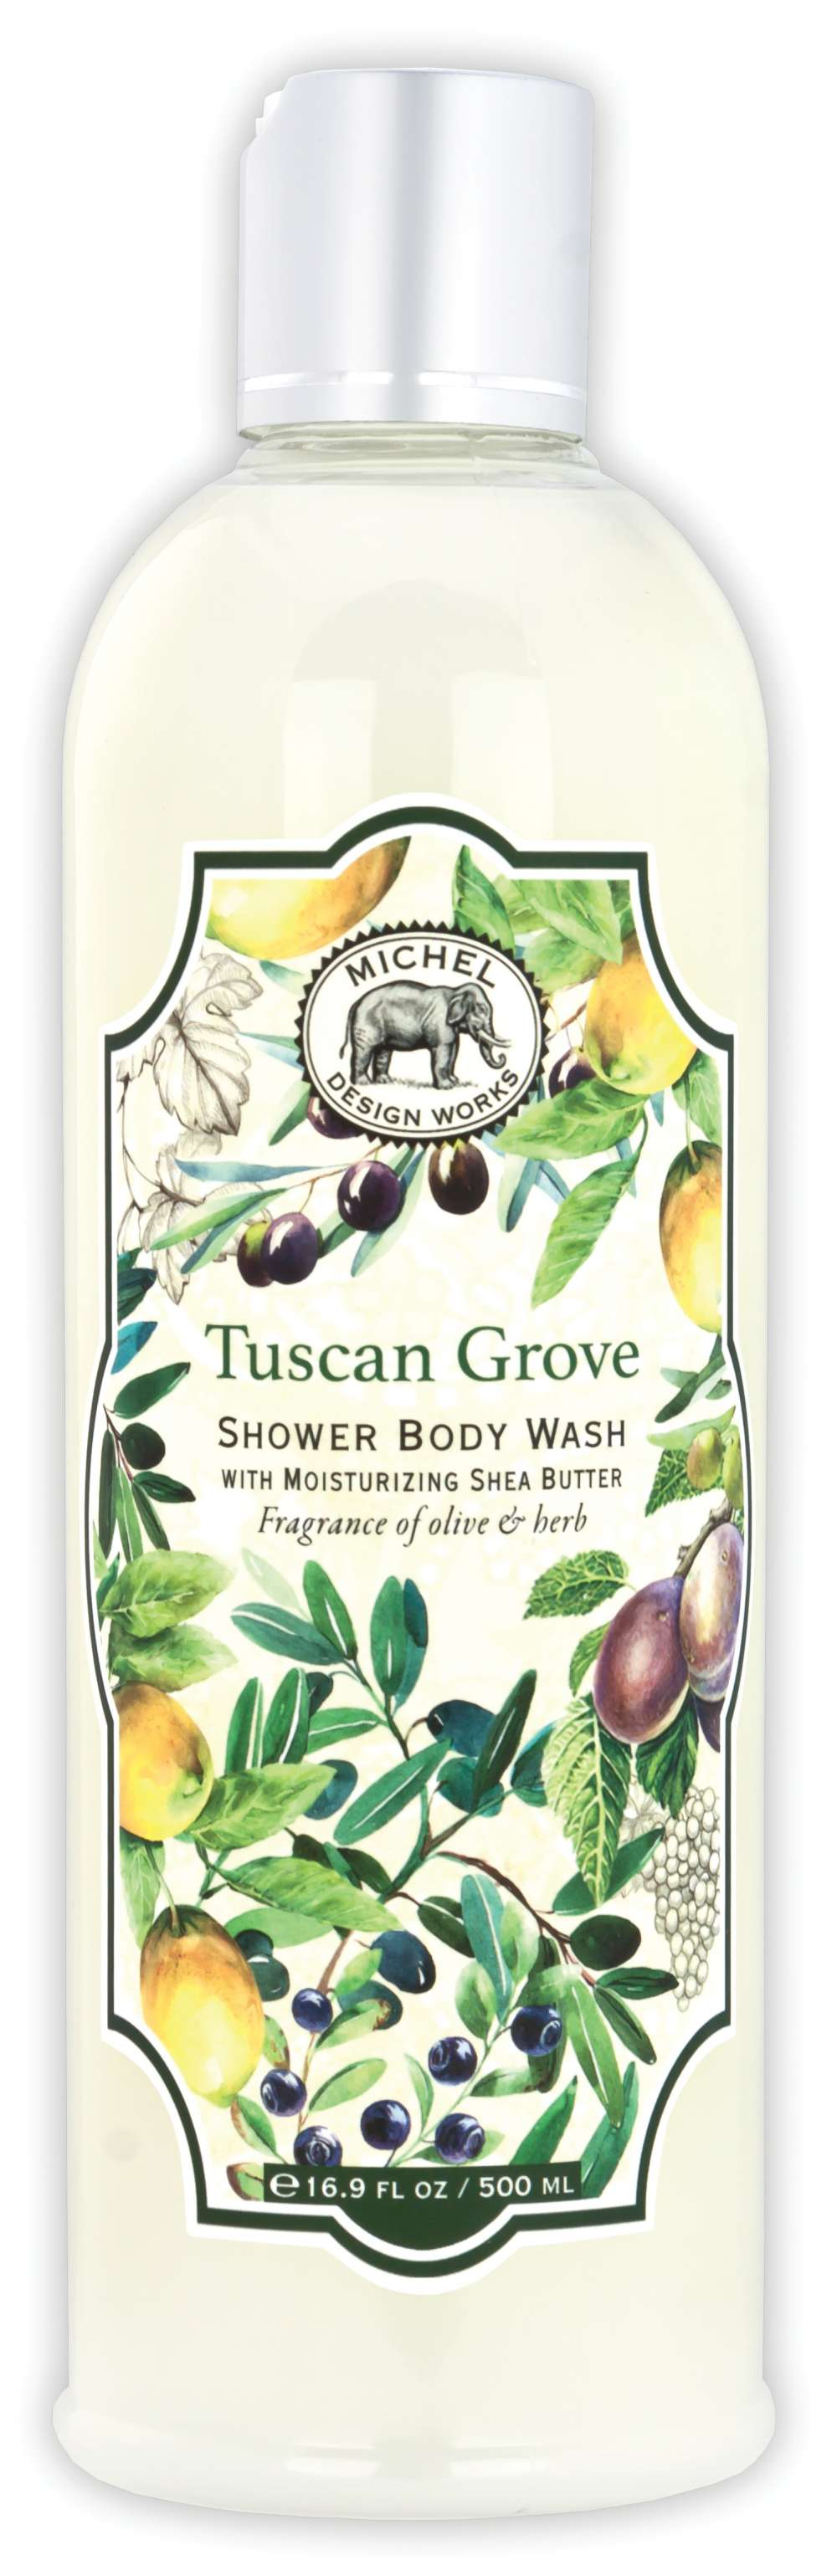 Tuscan Grove Shower Body Wash